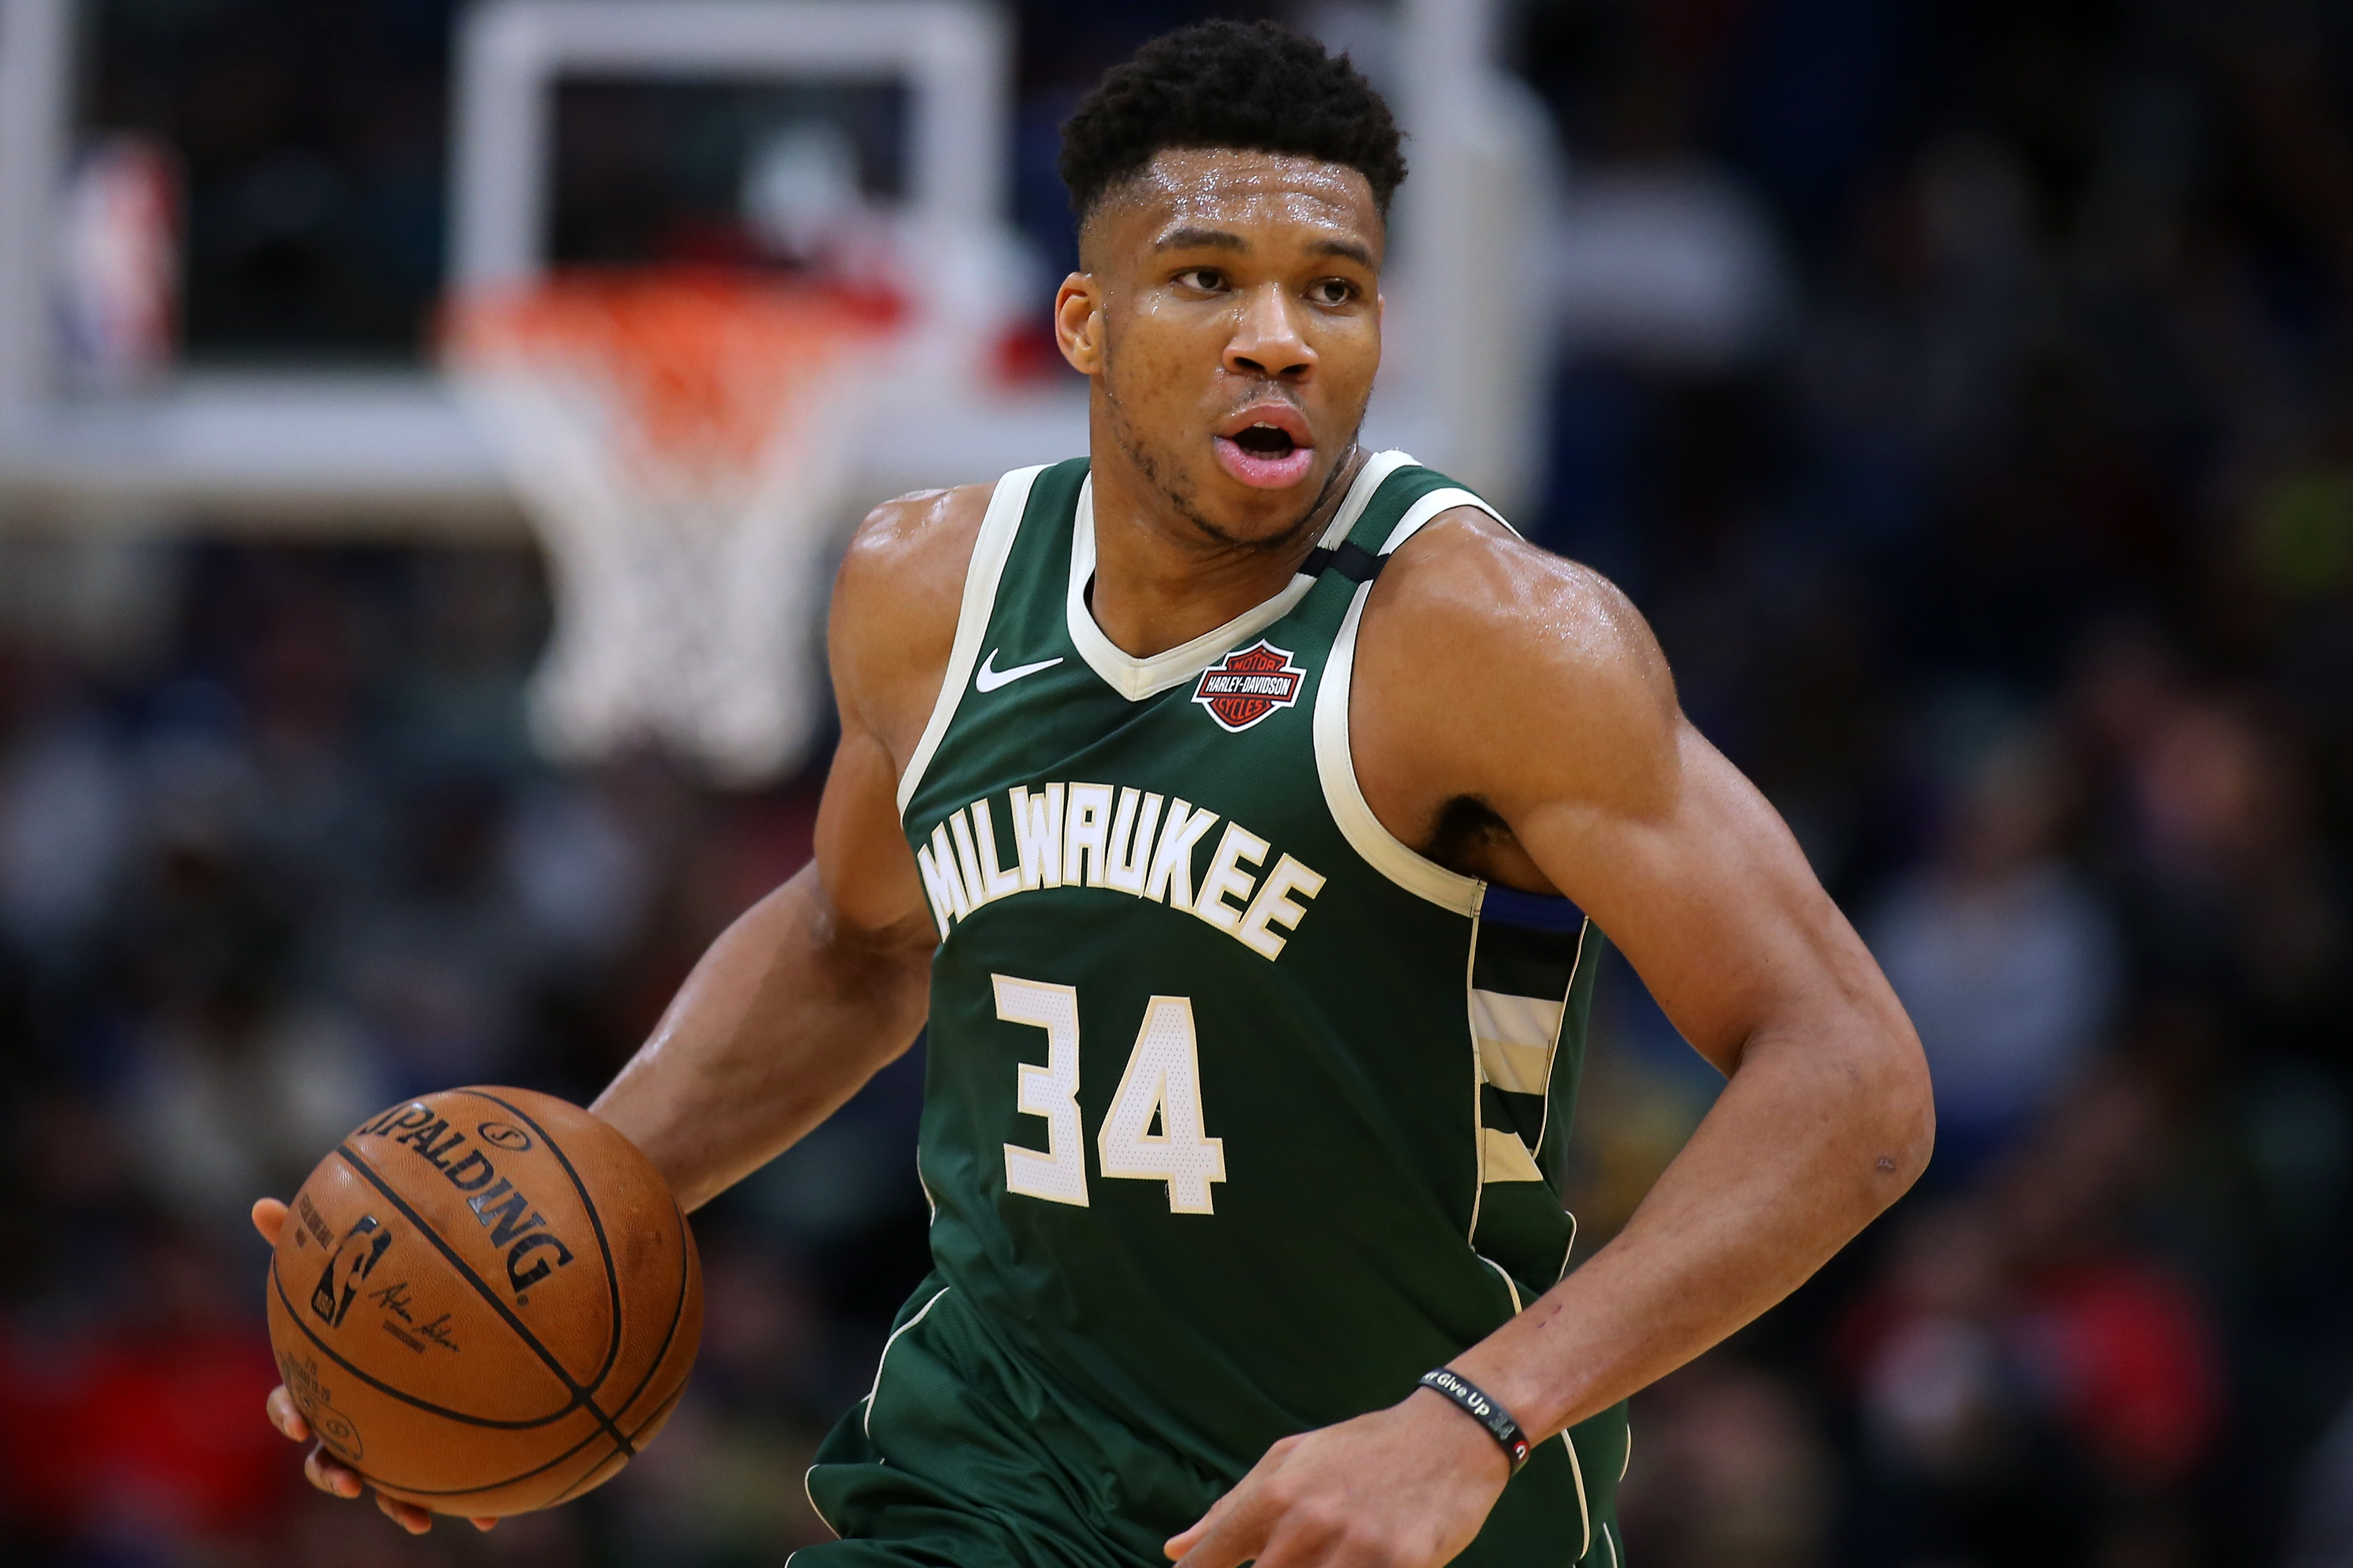 Giannis Antetokounmpo adds an unexpected secret ingredient to his smoothies to help aid his recovery.